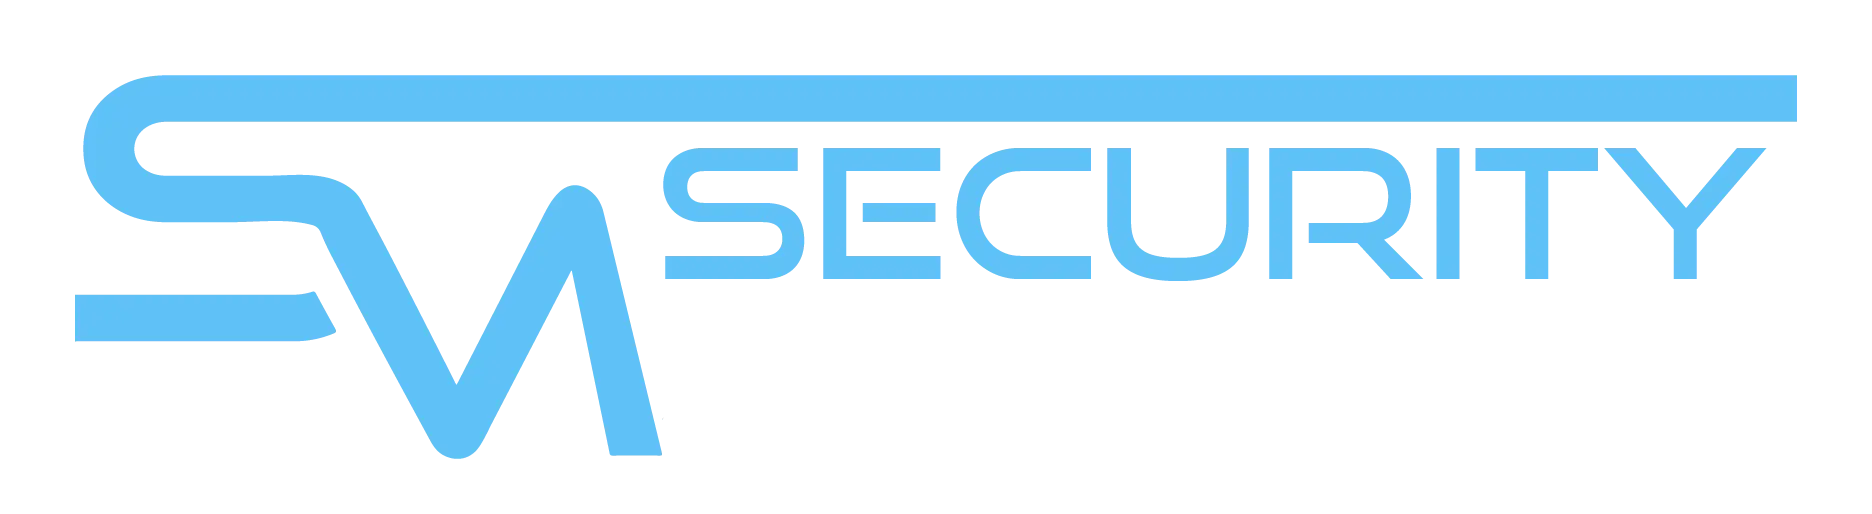 Security Mavericks Logo